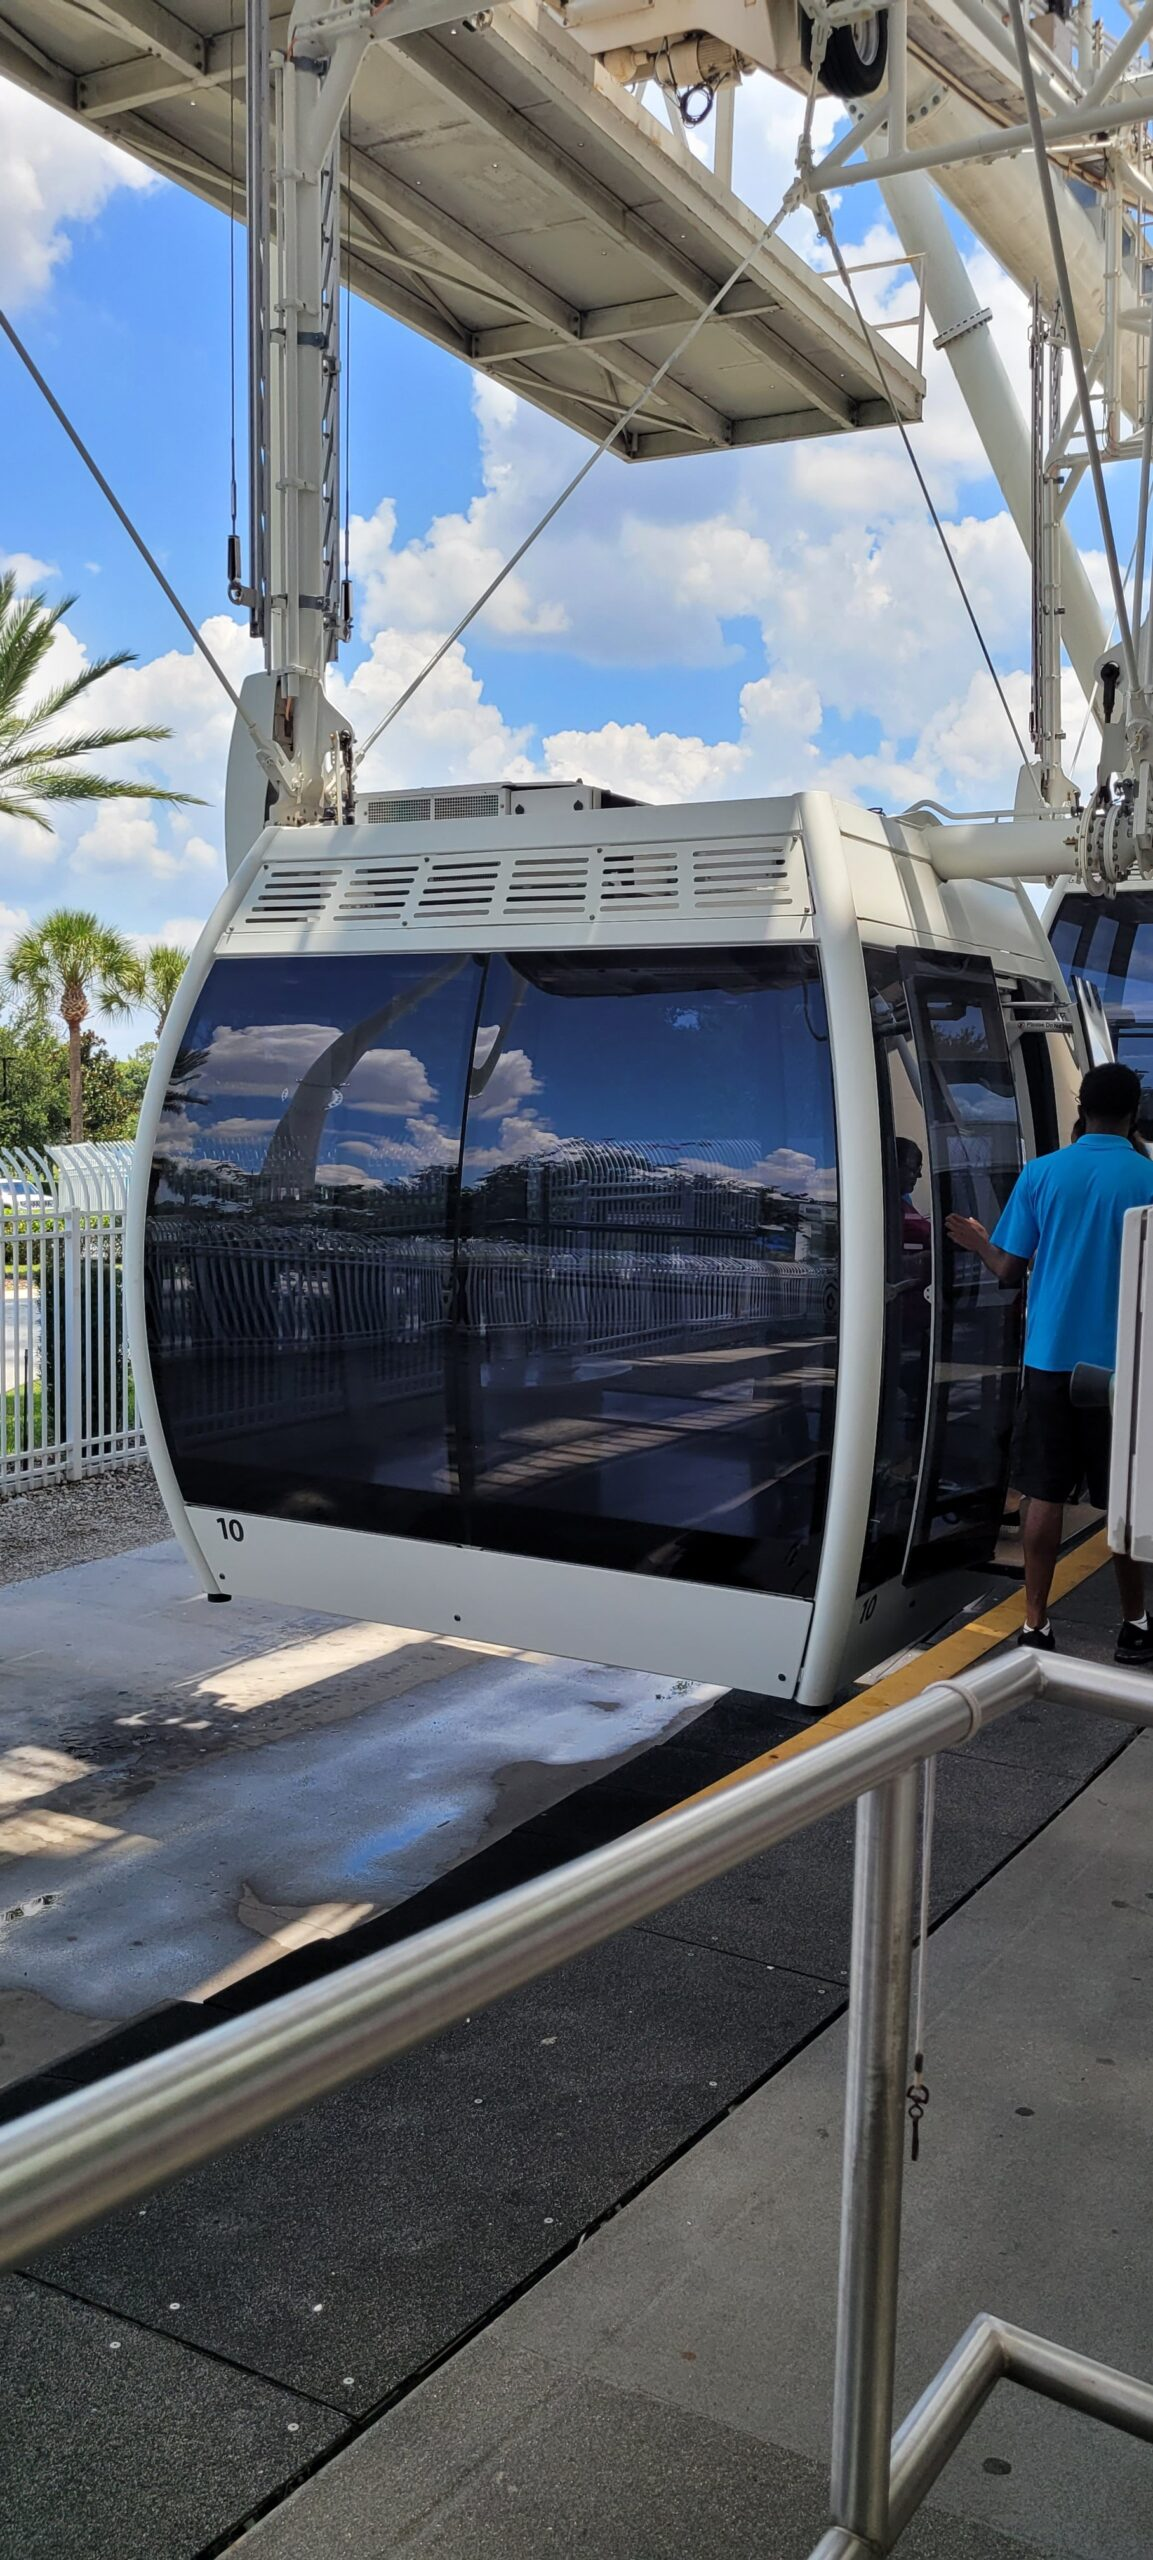 Have a family fun day at ICON Park in Orlando 23